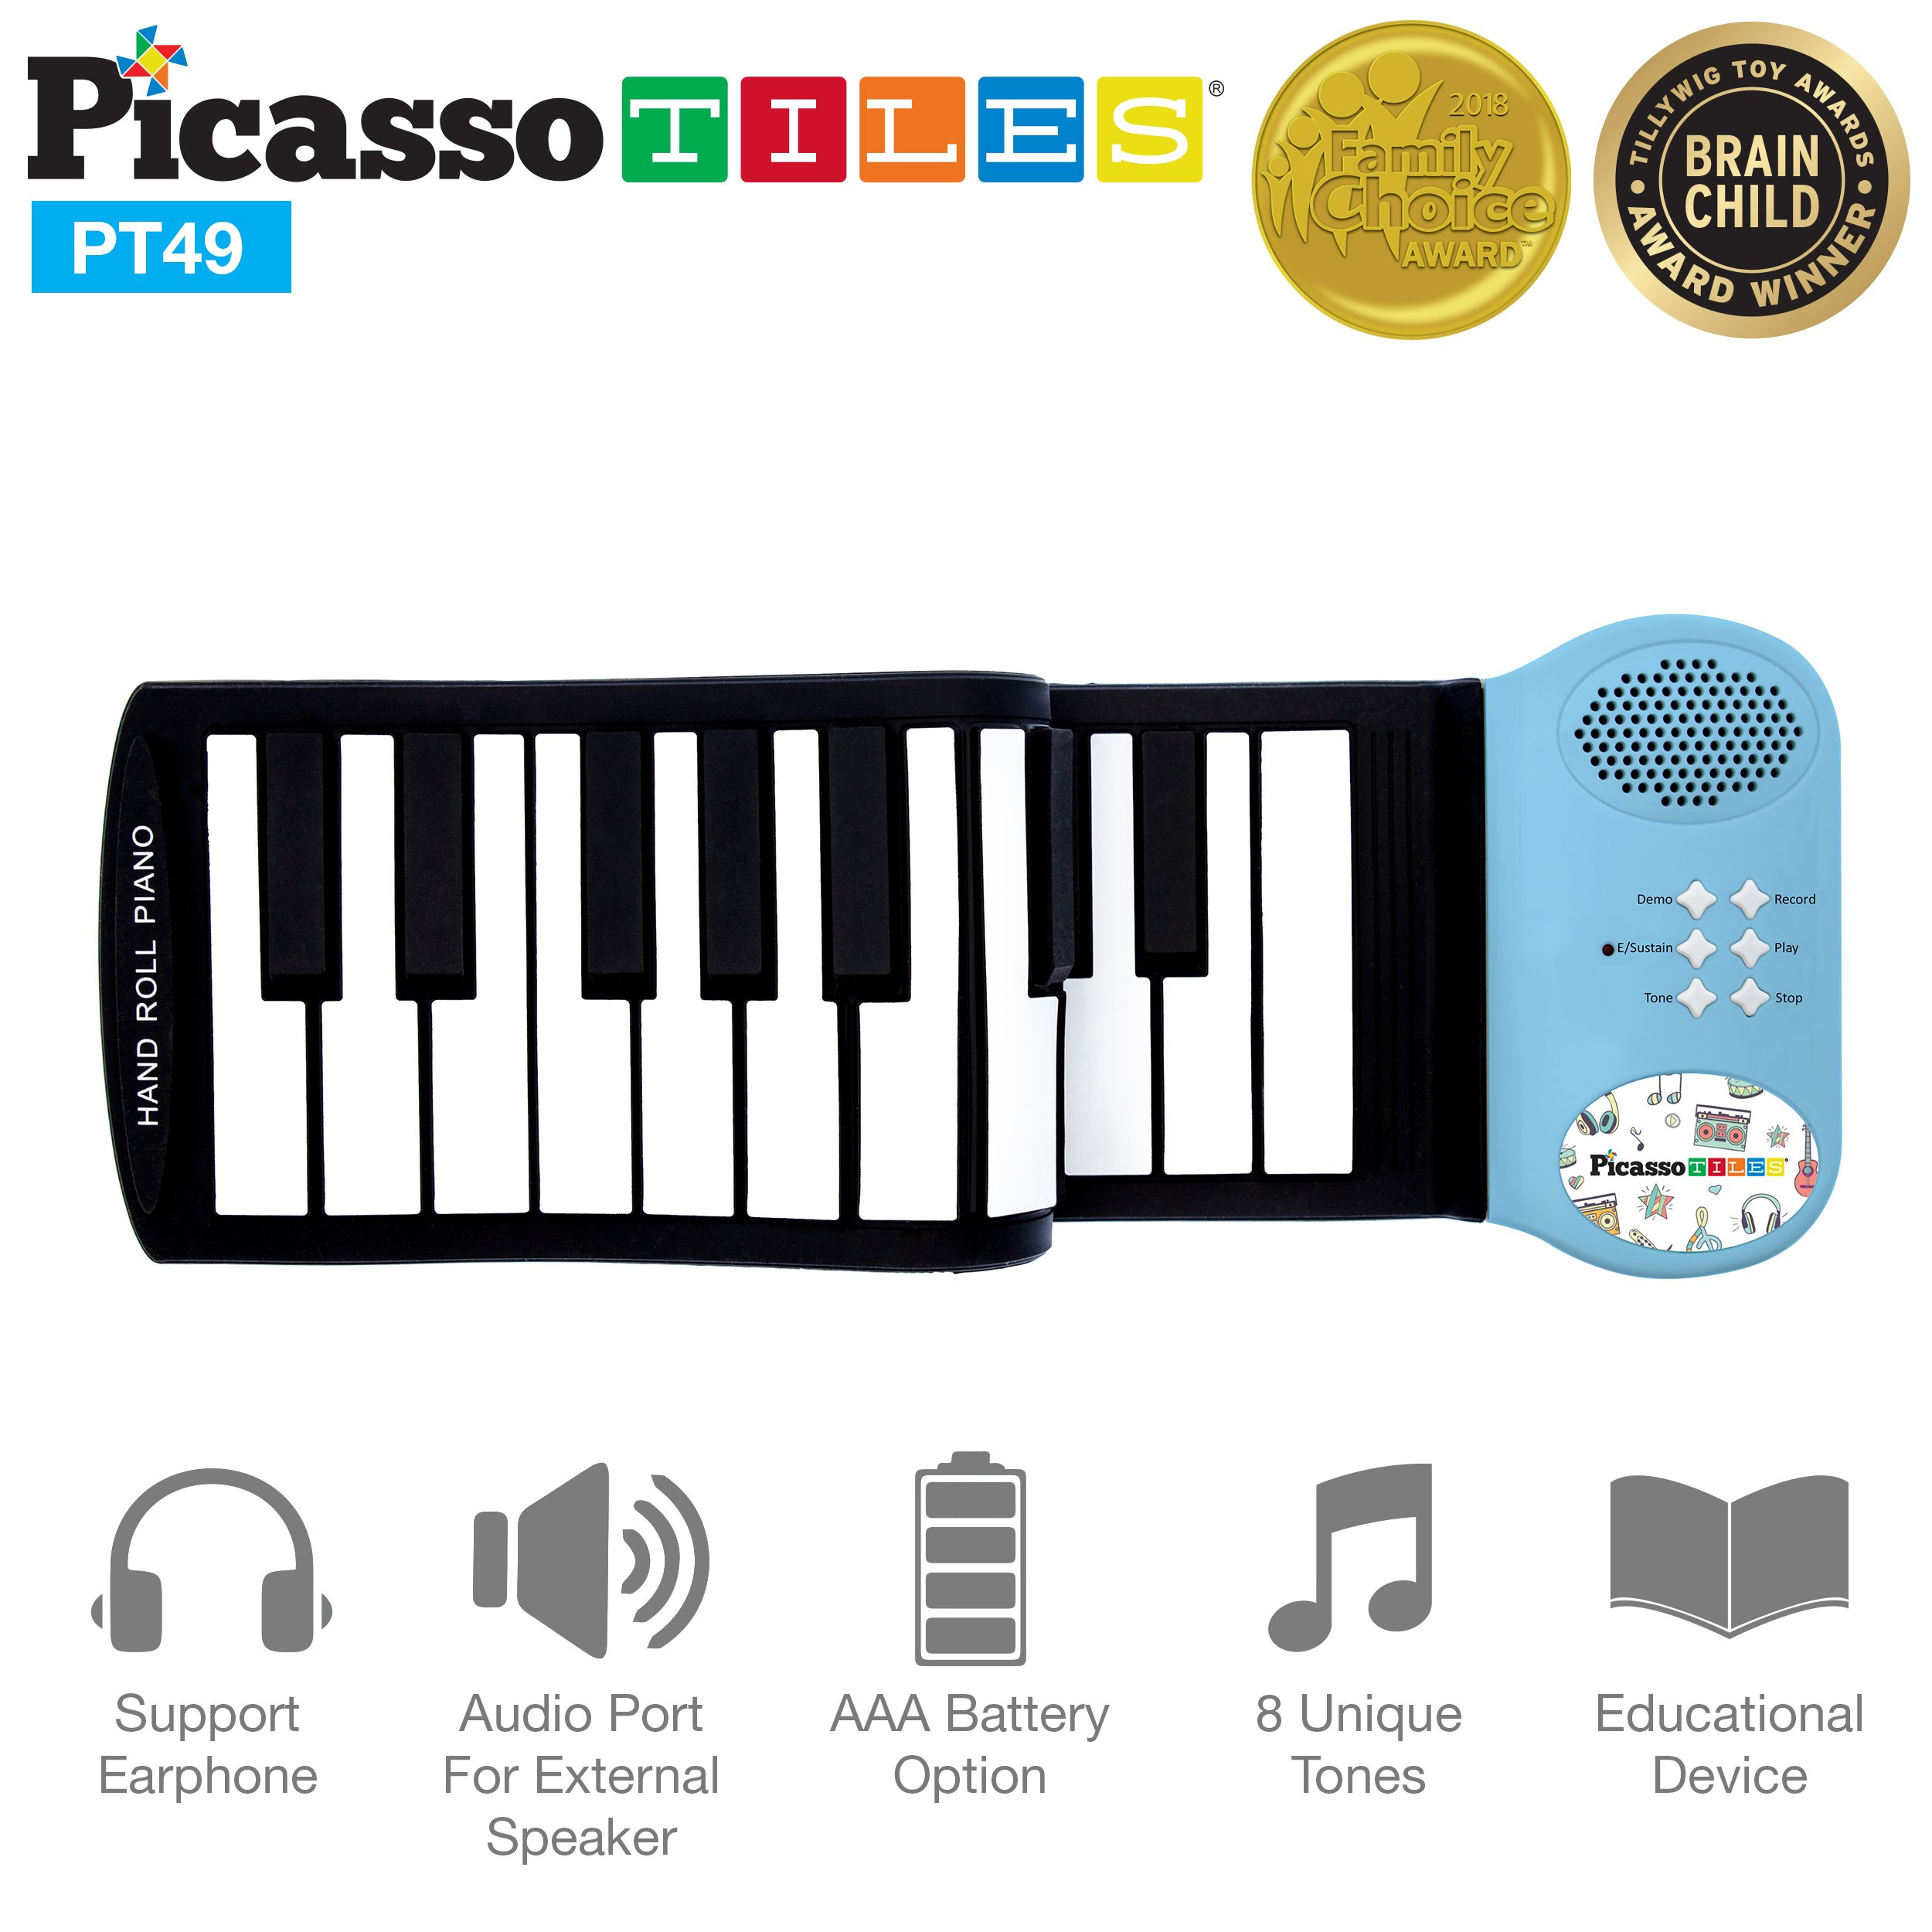 PicassoTiles PT49 Portable Kid's 49-Key Flexible Roll Up Educational Electronic Digital Music Piano Keyboard w/Recording Feature, 8 Different Tones, 6 Educational Demo Songs & Build-in Speaker - Blue by PicassoTiles